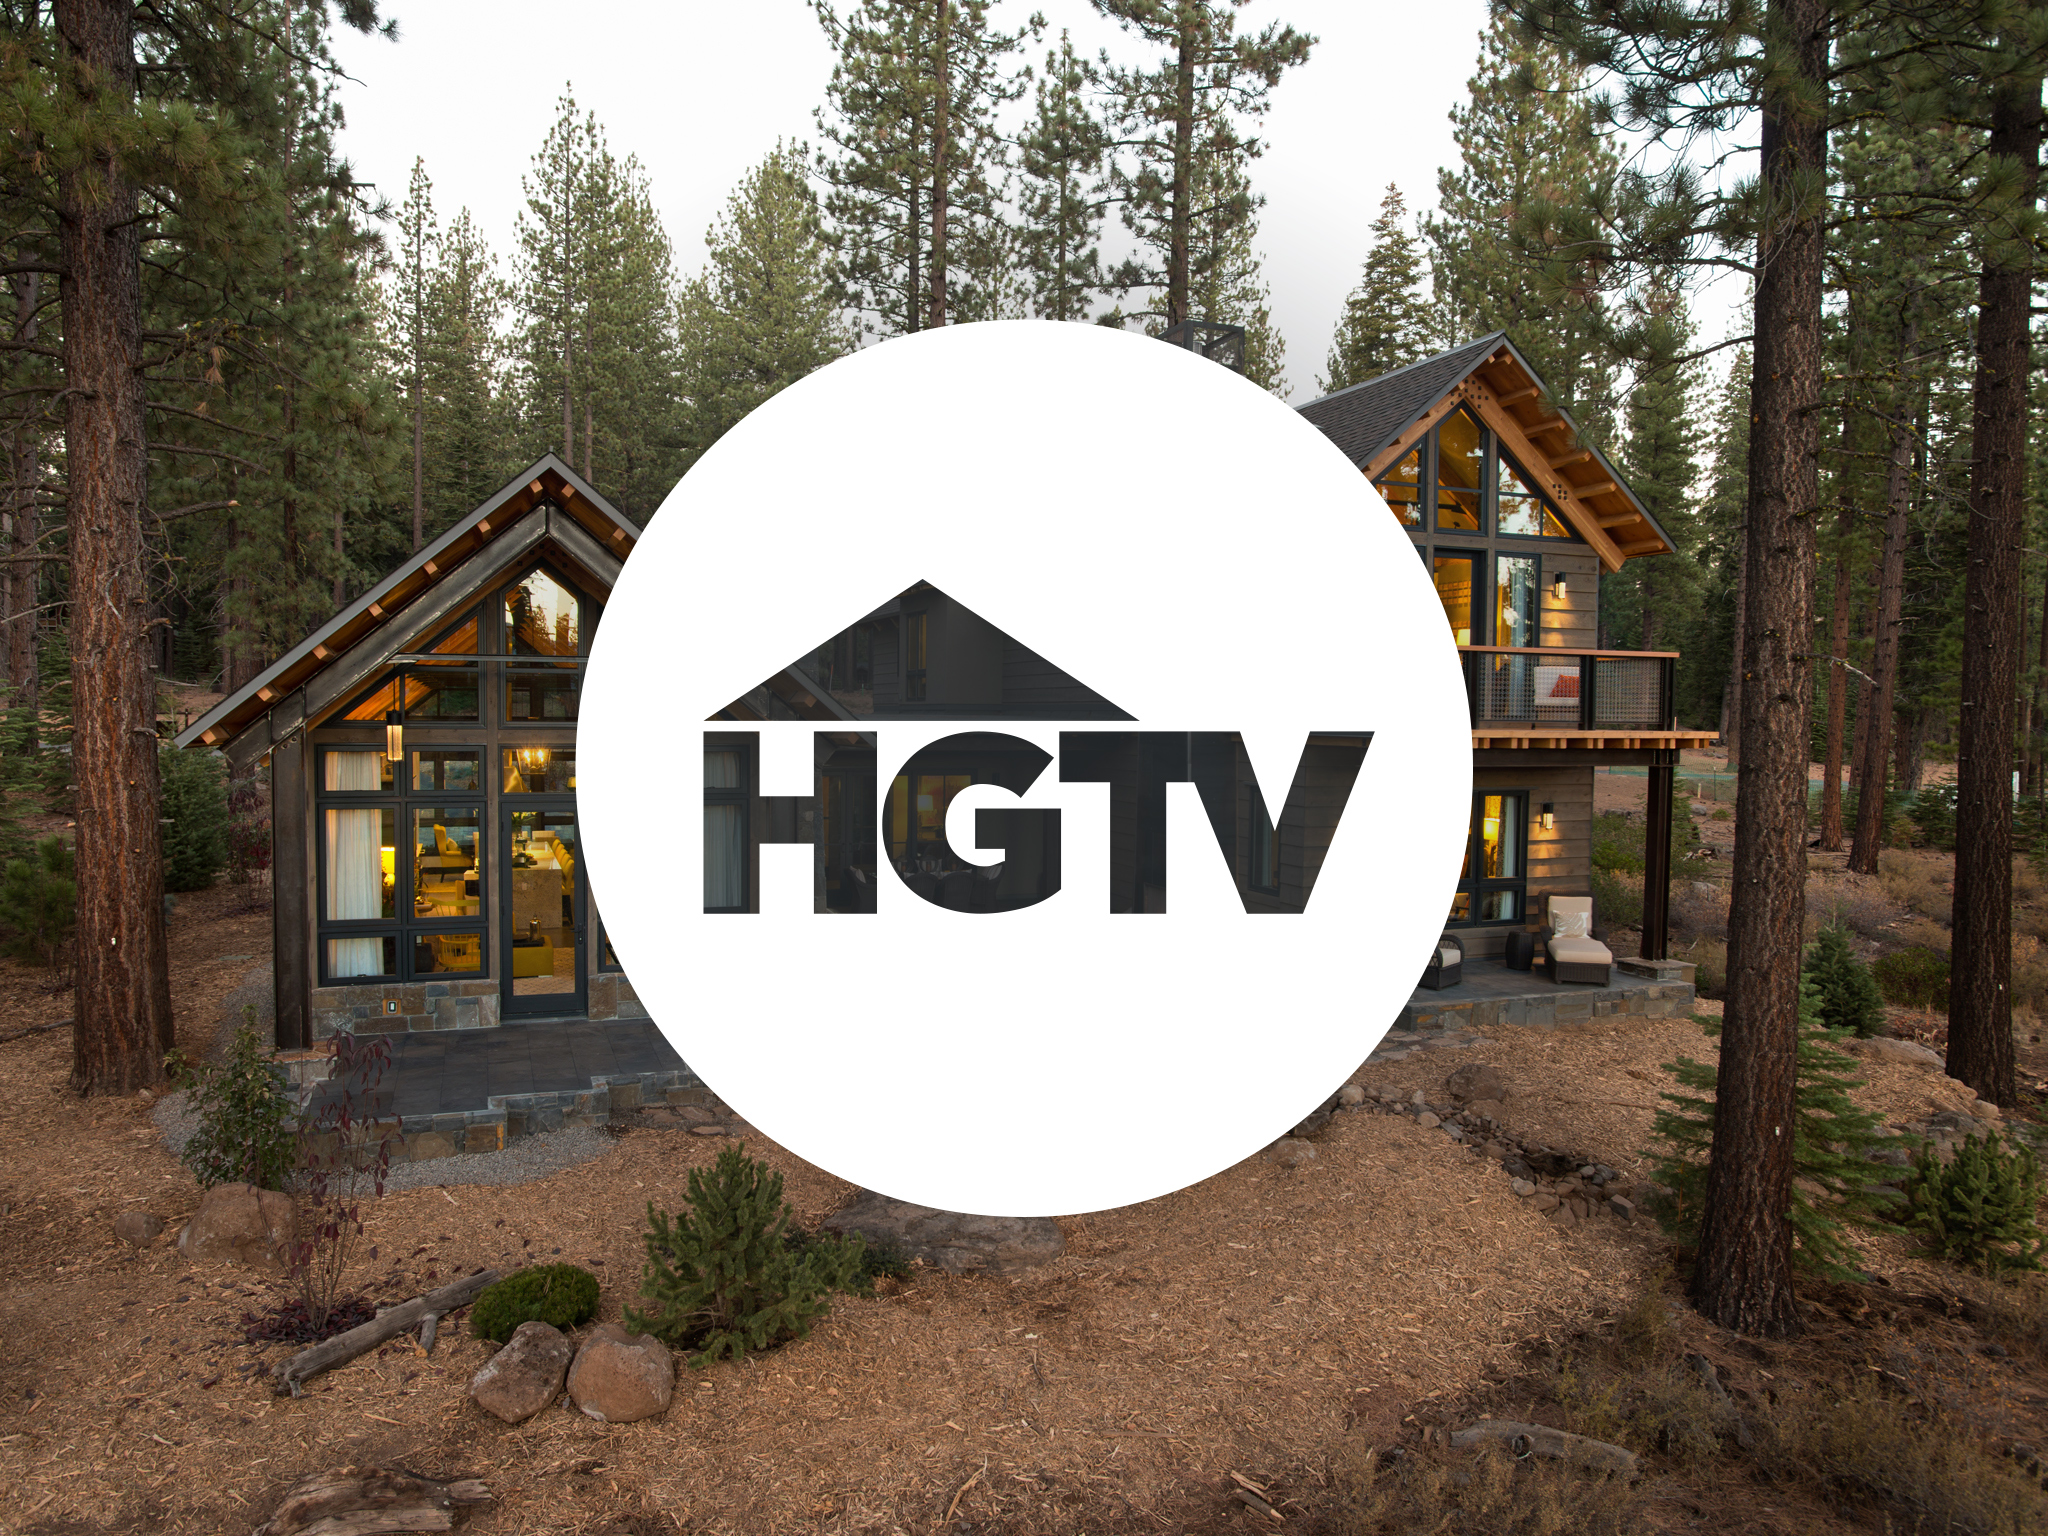 hgtv-portal-feature.jpg